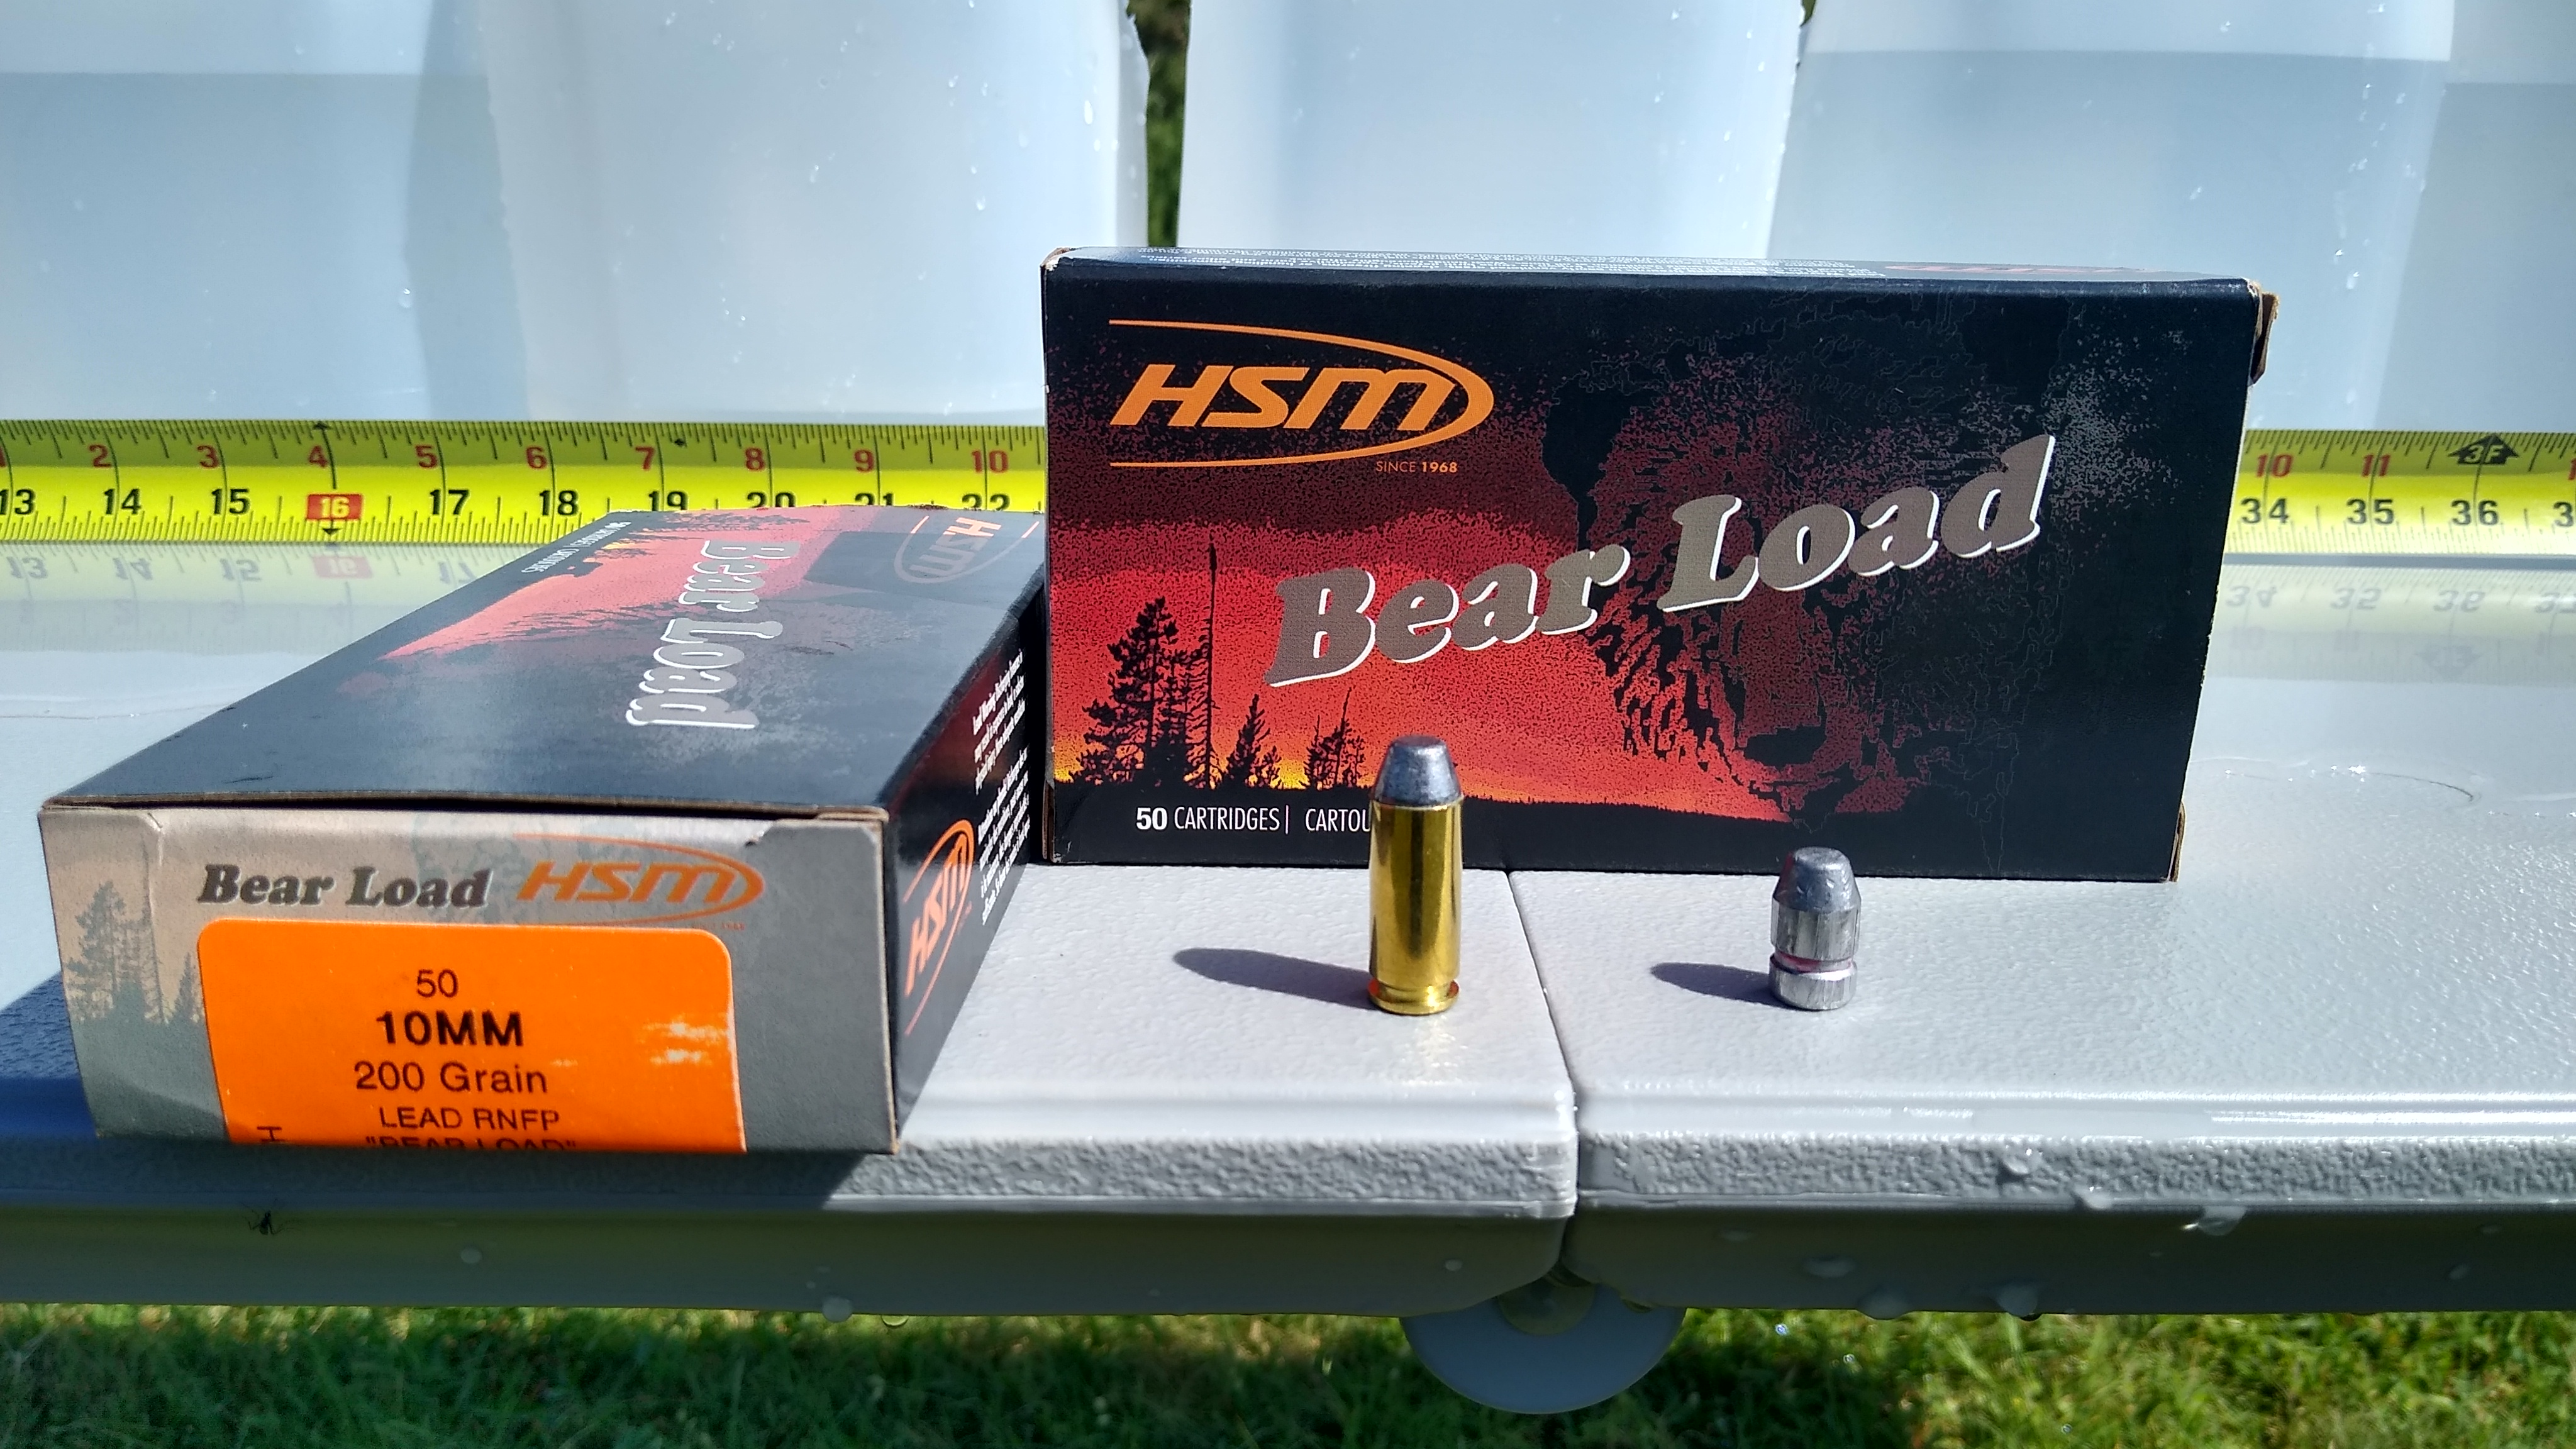 The HSM Bear Load in 10mm produces results when it comes to performance.